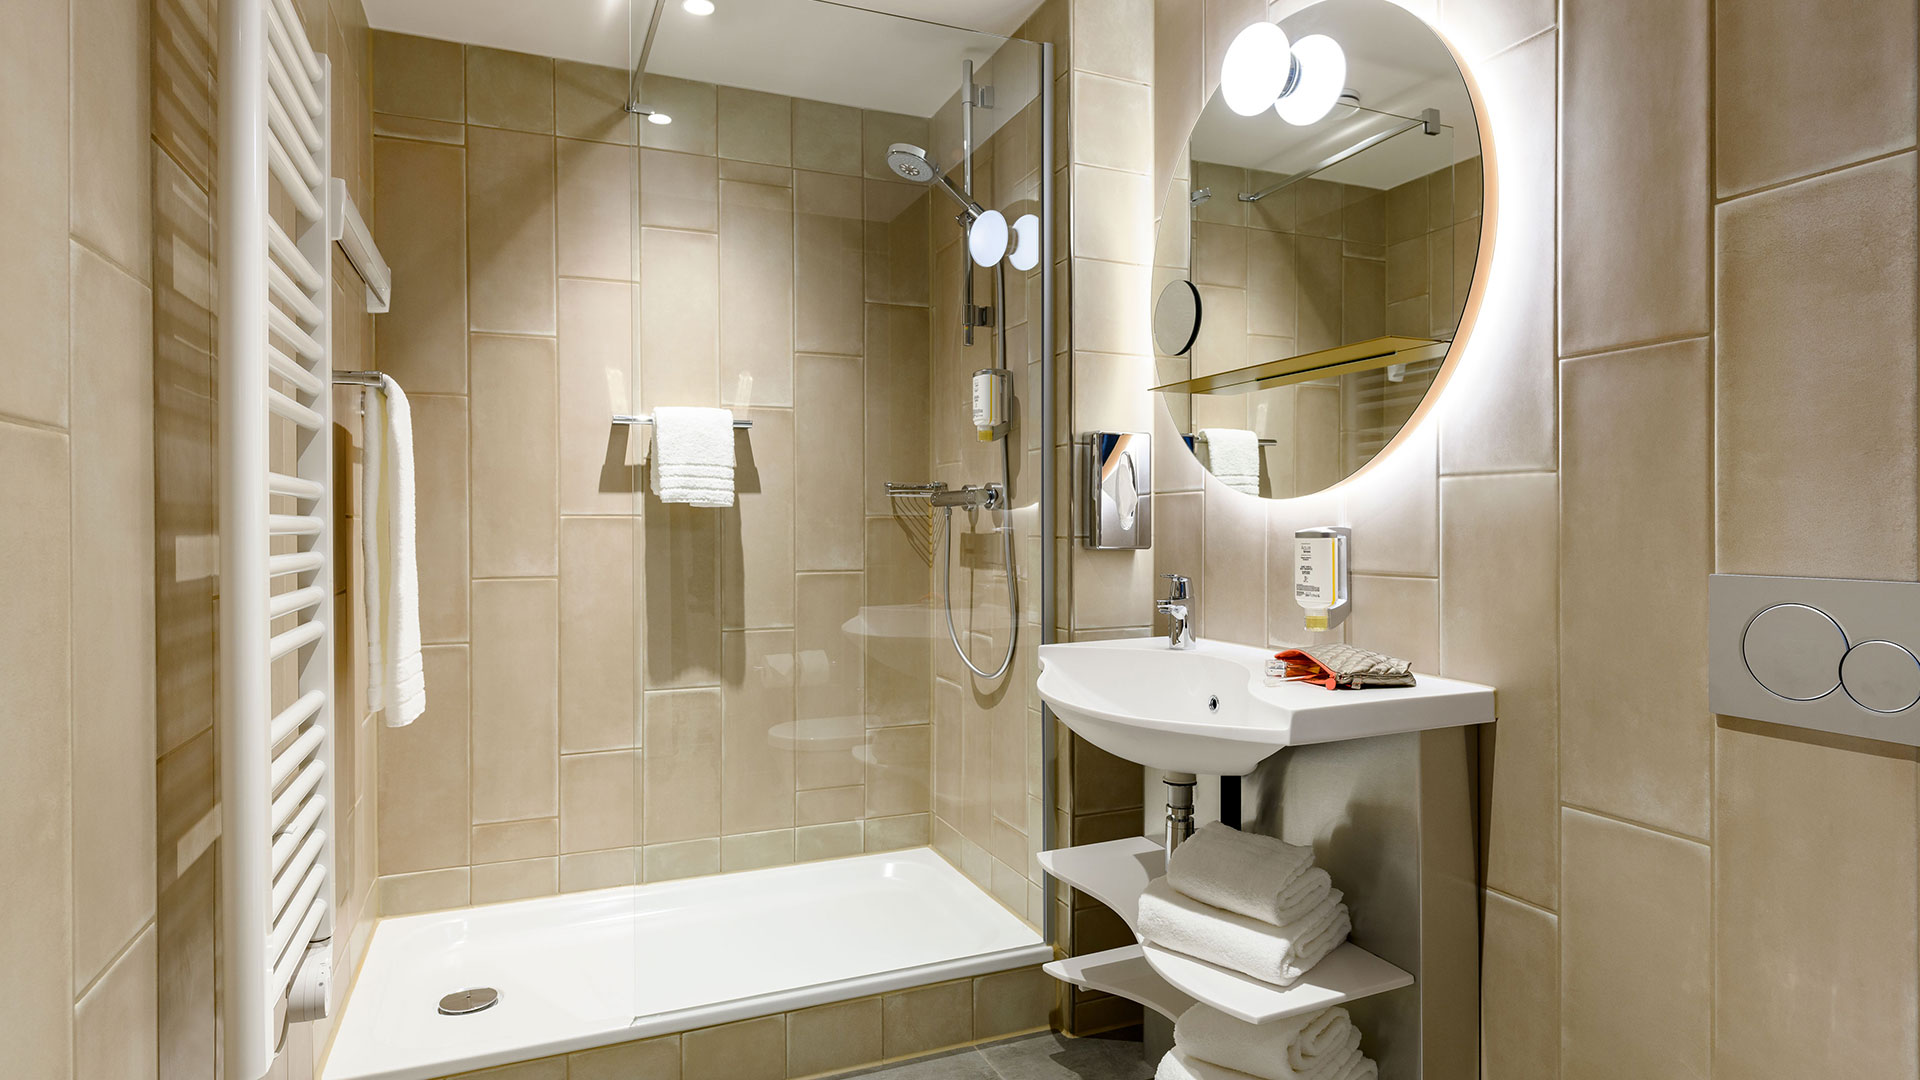 Photo of a bathroom - Aparthotel Adagio Bremen